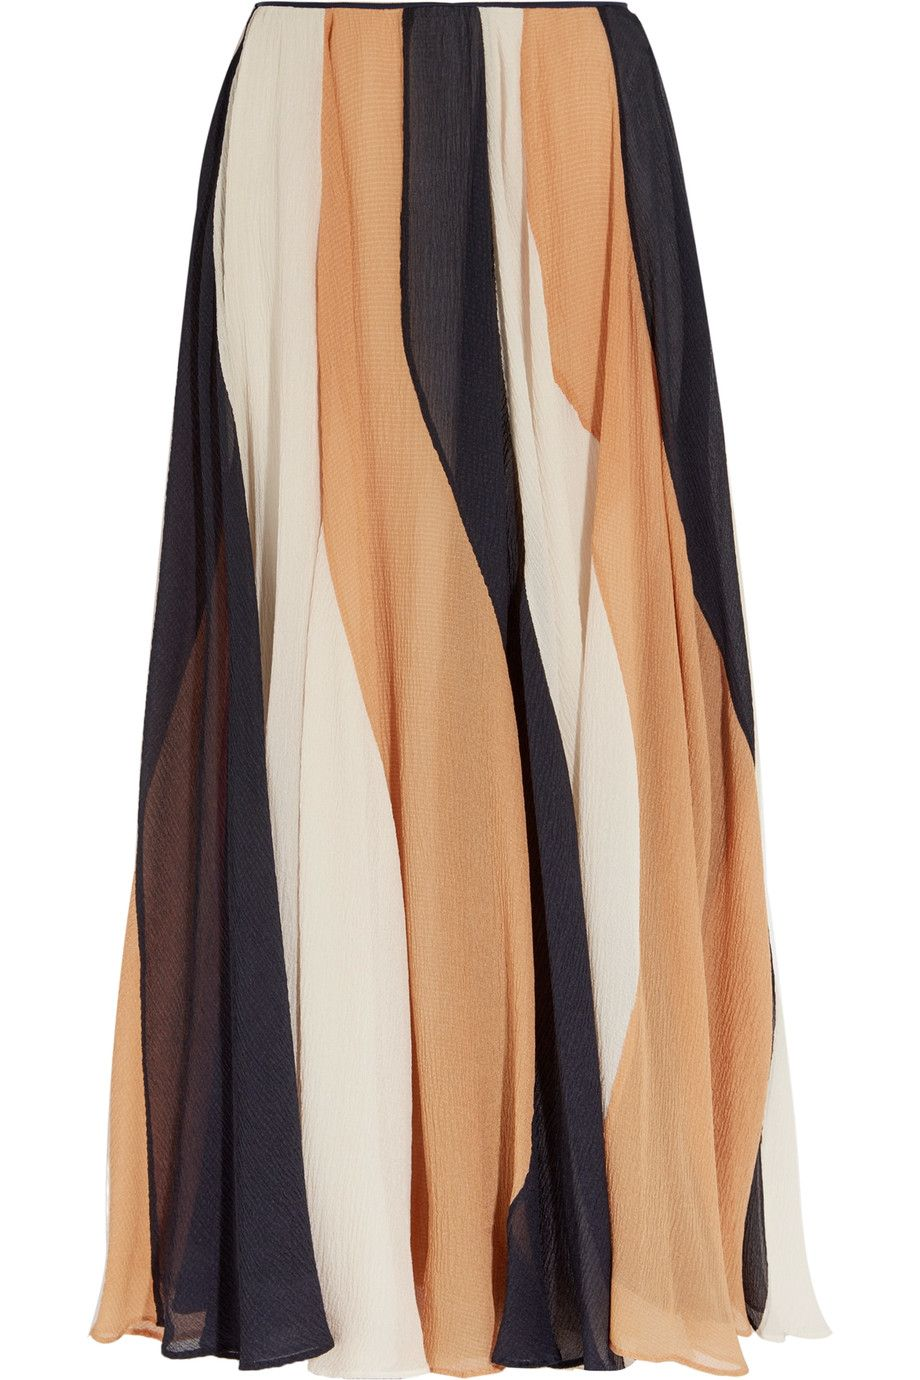 69fe580c661f Shop on-sale Roksanda Zaha striped silk-seersucker midi skirt. Browse other  discount designer Skirts   more on The Most Fashionable Fashion Outlet